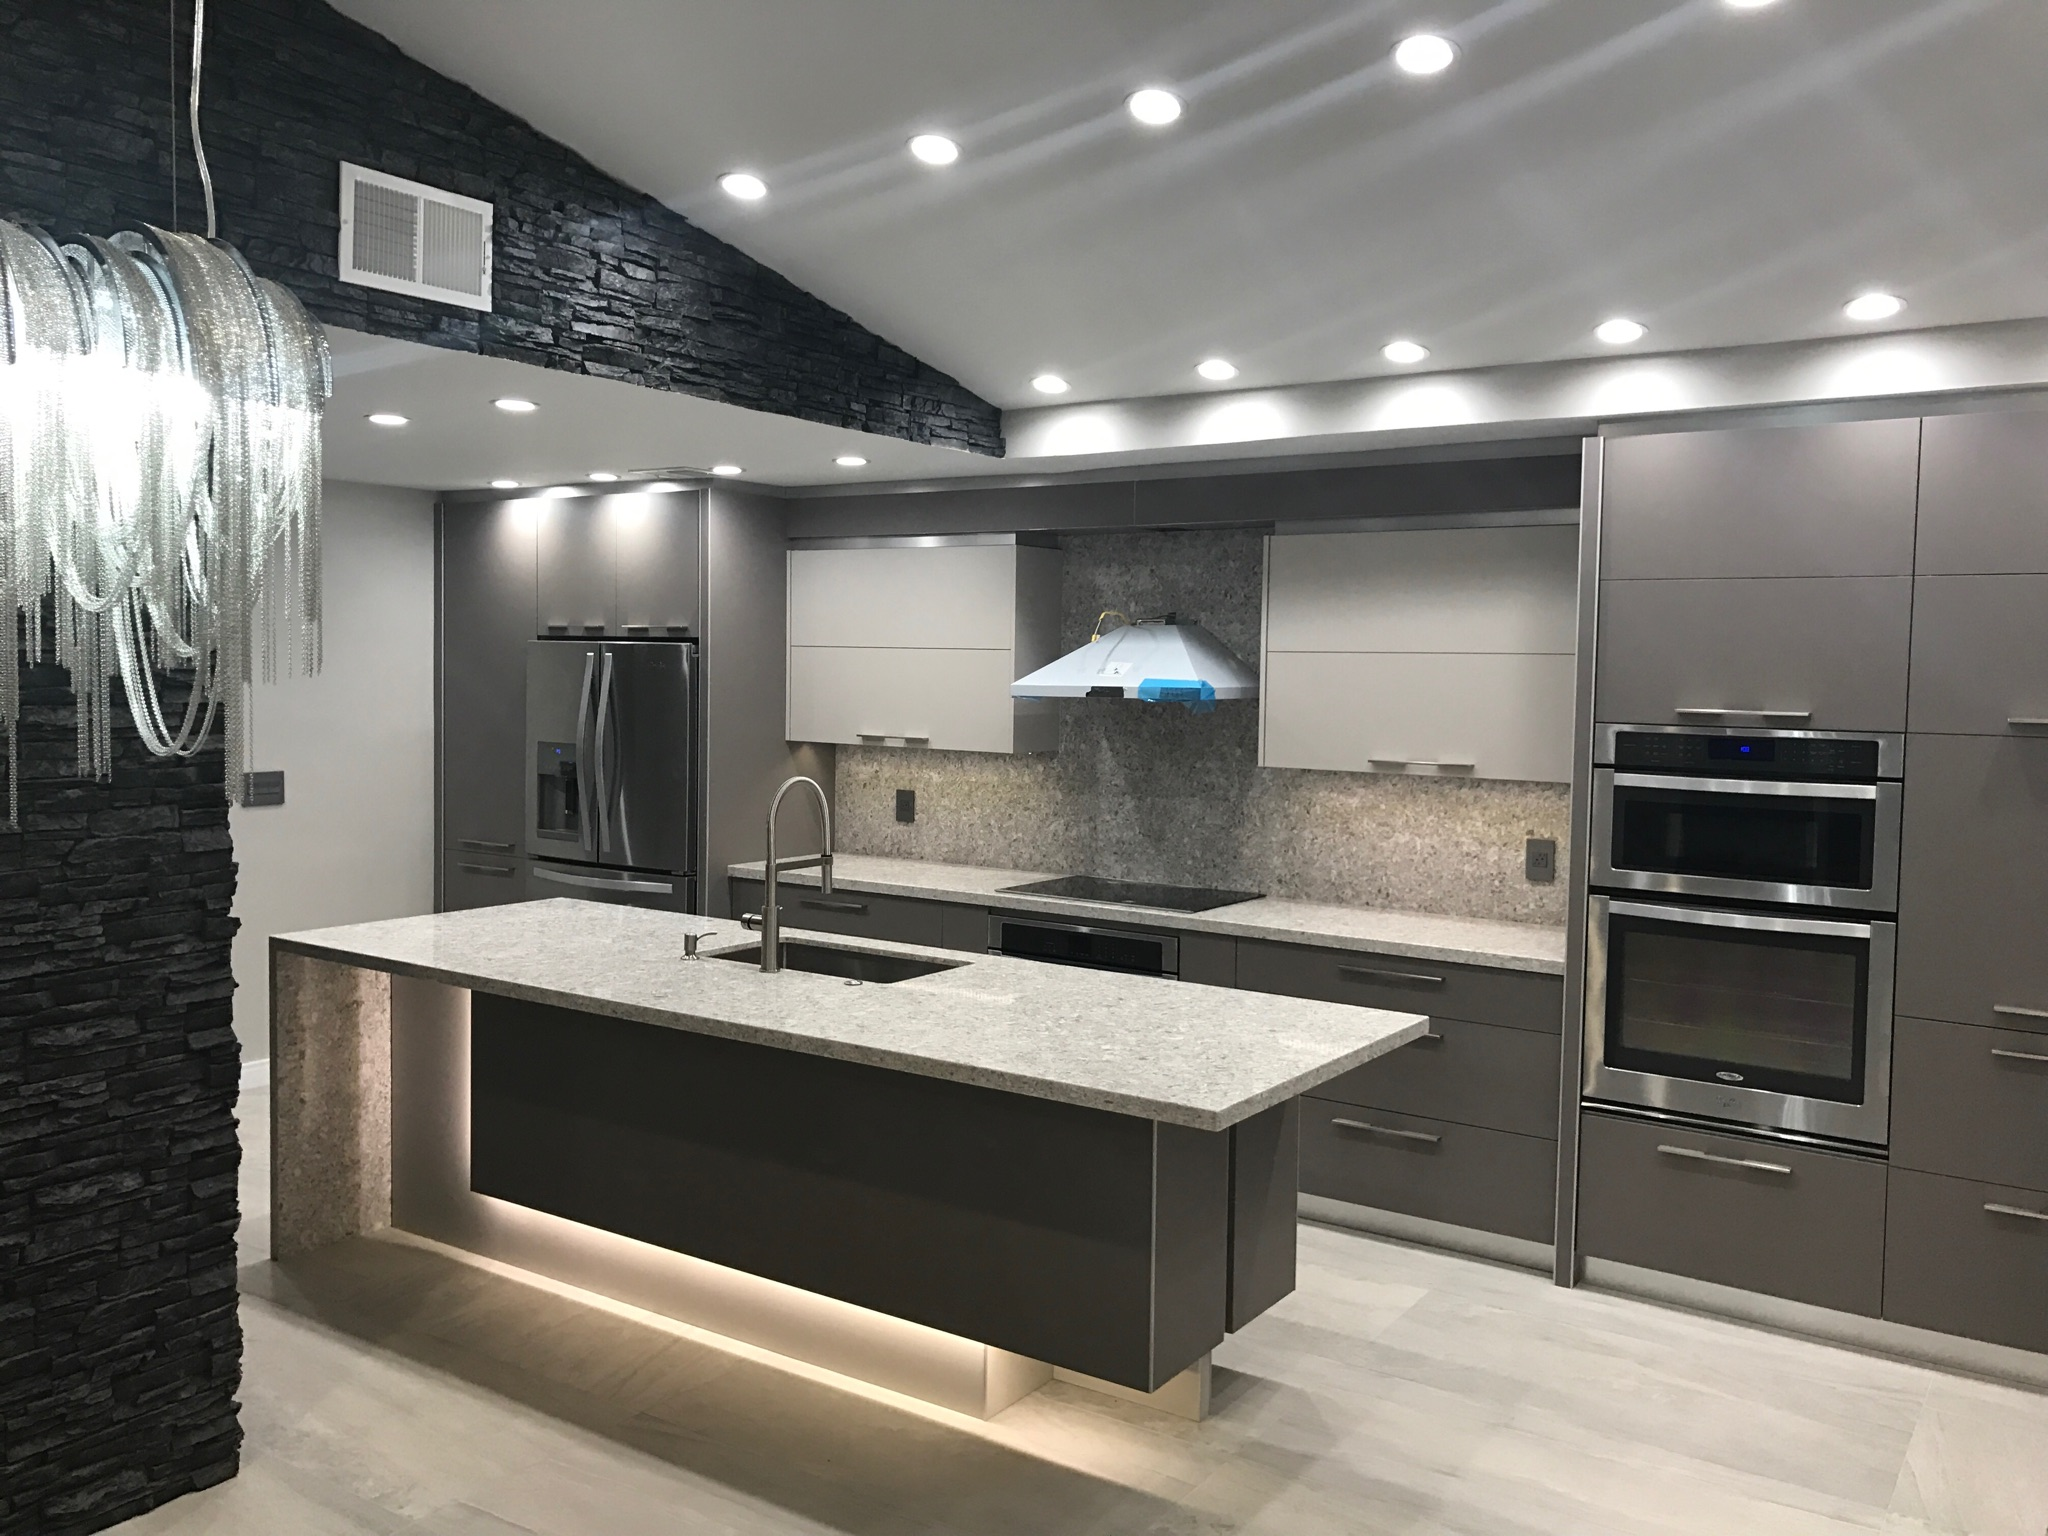 New Kitchen Cabinets Modern Kitchen Cabinets New Kitchen Cabinets Fort Lauderdale